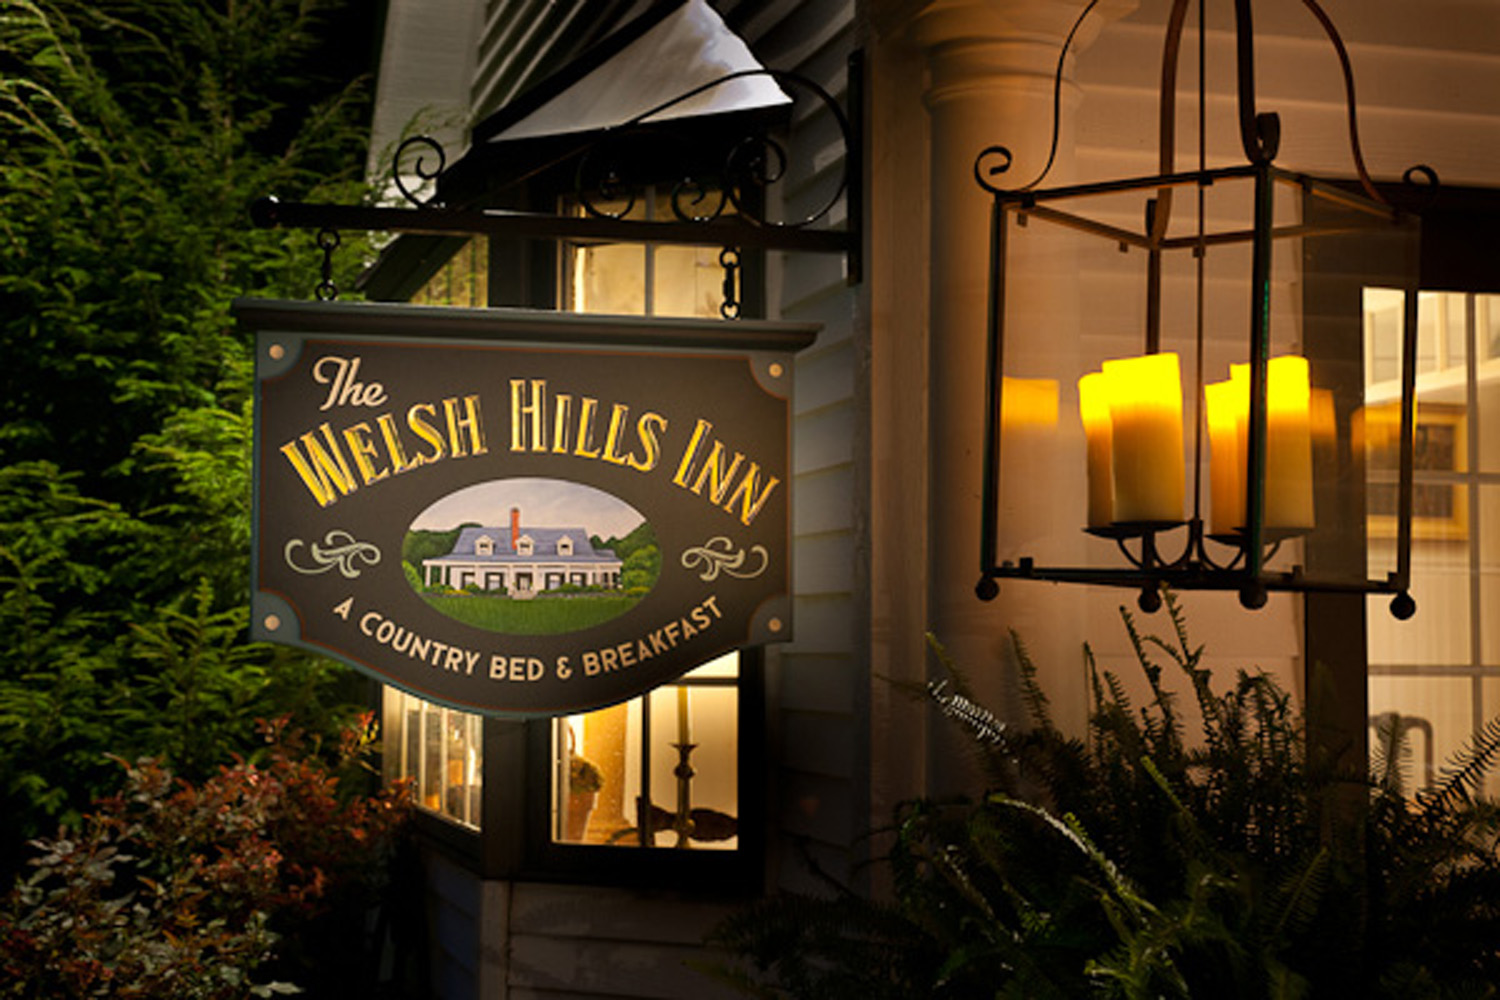 The Welsh Hills Inn - Inn Sign and Bay Window at Night - 010115.jpg